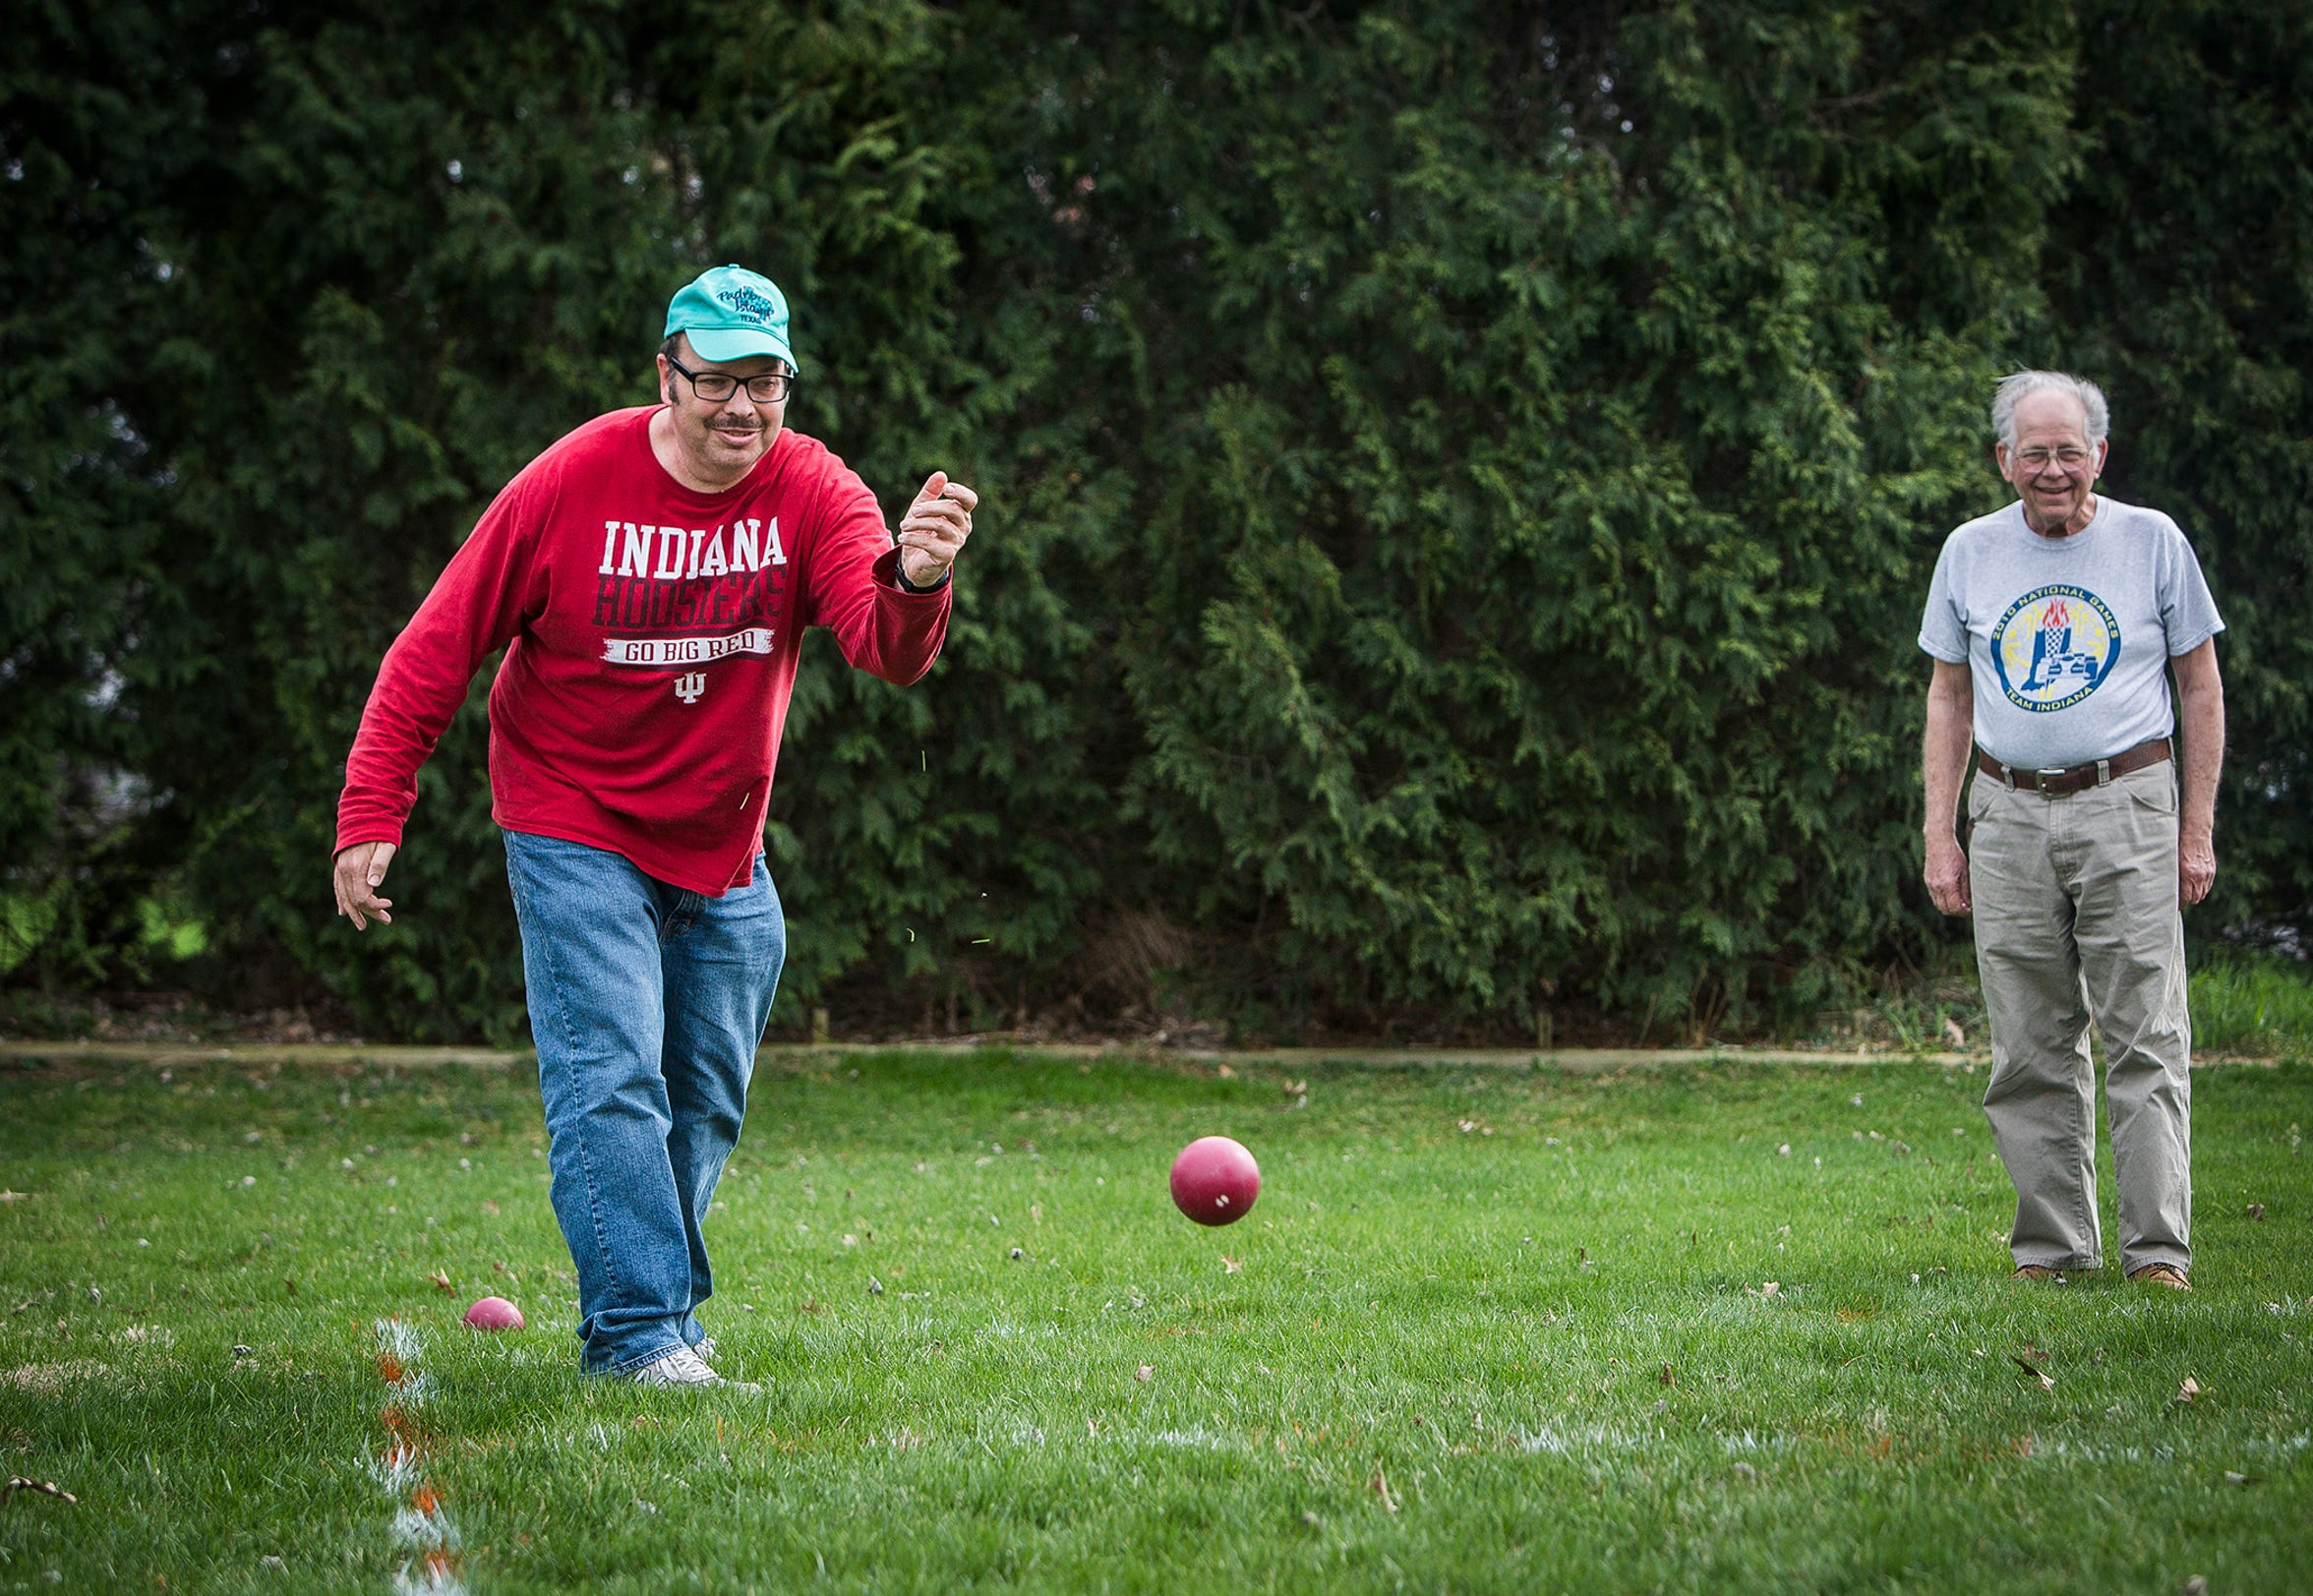 Jim Benadaum plays Bocci Ball with his father. In addition to being involved in self advocacy, Benadaum is heavily involved in the Special Olympics.